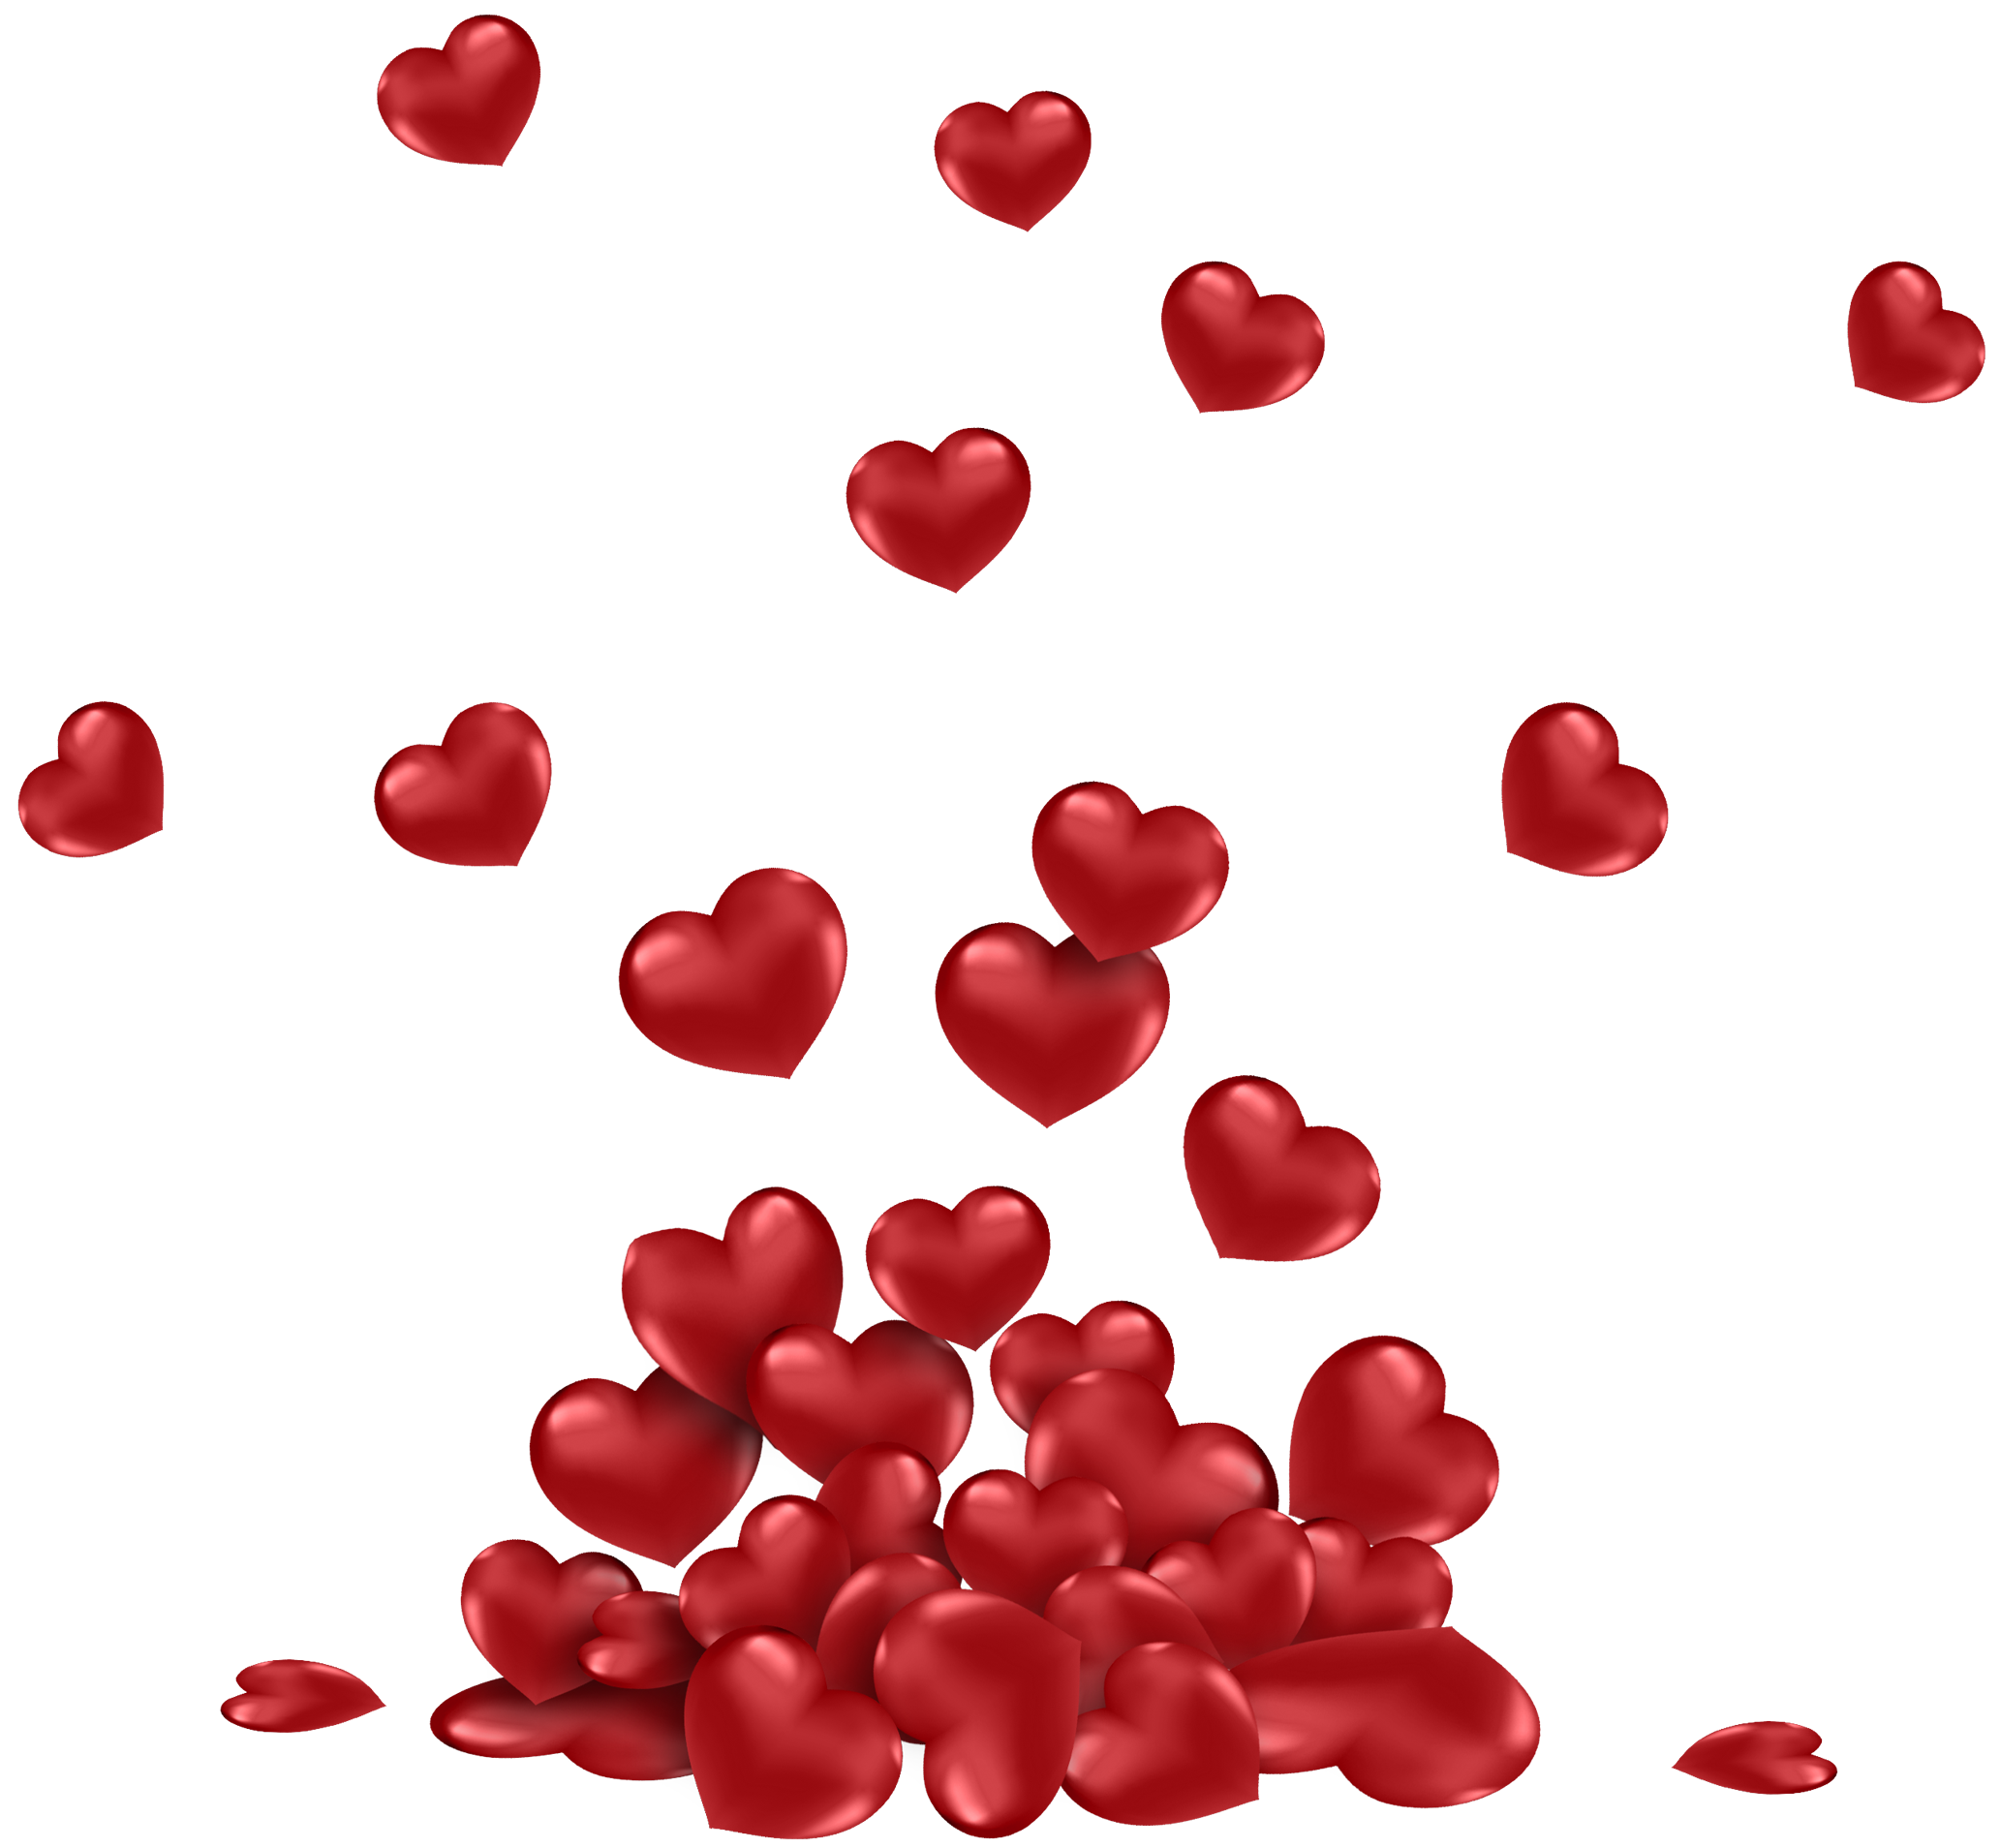 Bunch Of Hearts Png Picture Heart Pictures Abstract Iphone Wallpaper Red